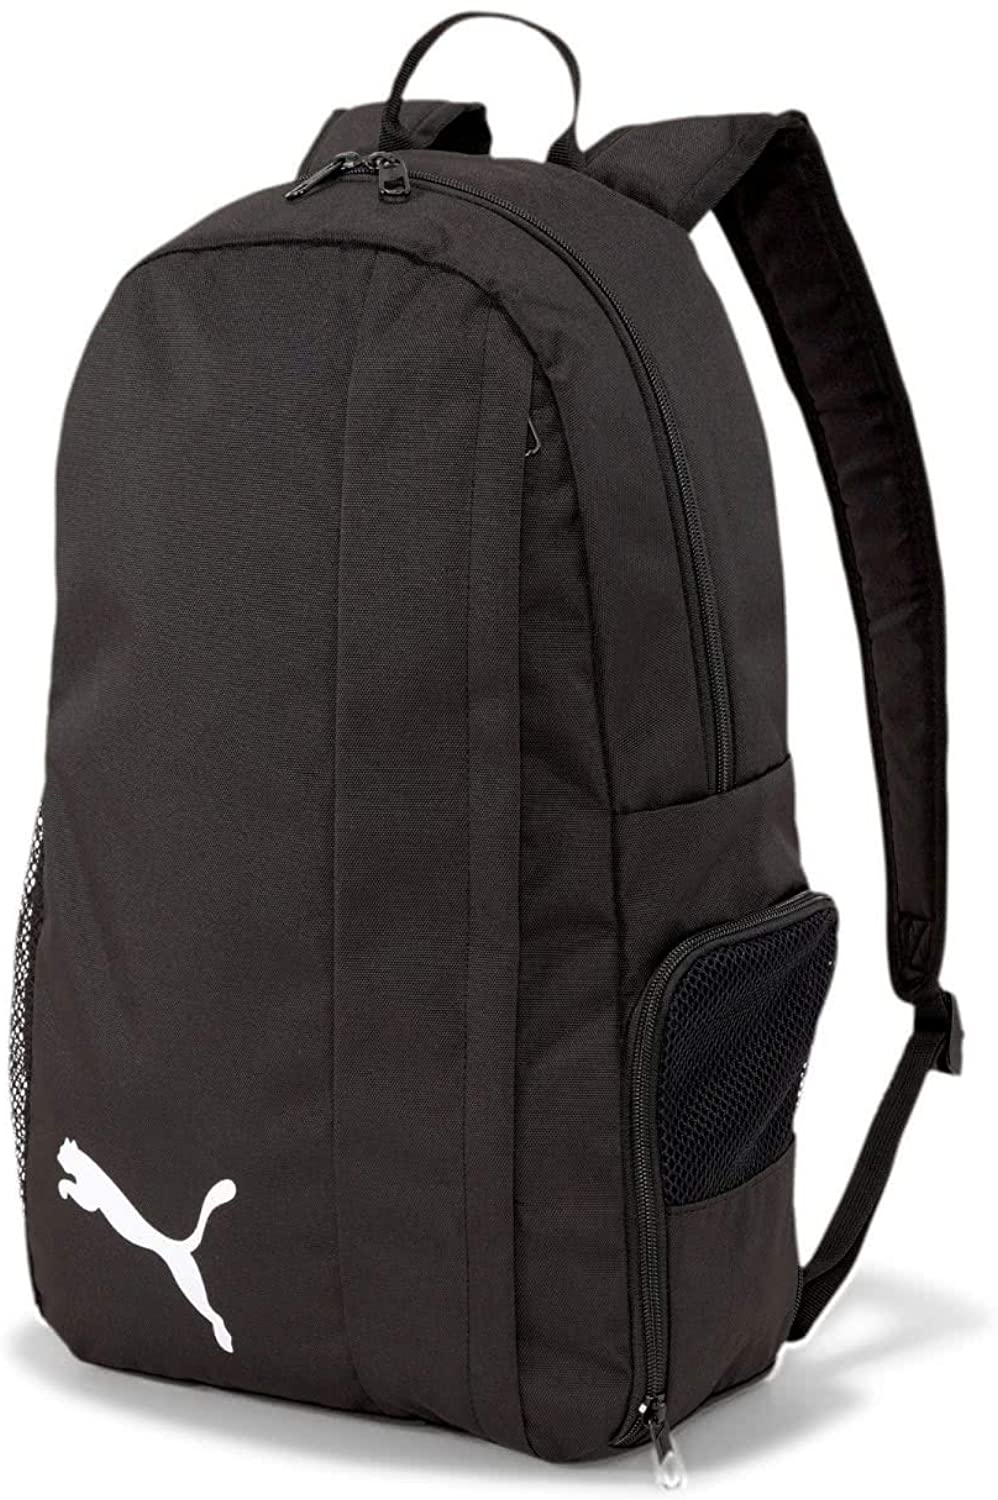 PUMA Unisex Adults' teamGOAL 23 Backpack BC (Boot Compartment) Black, One Size